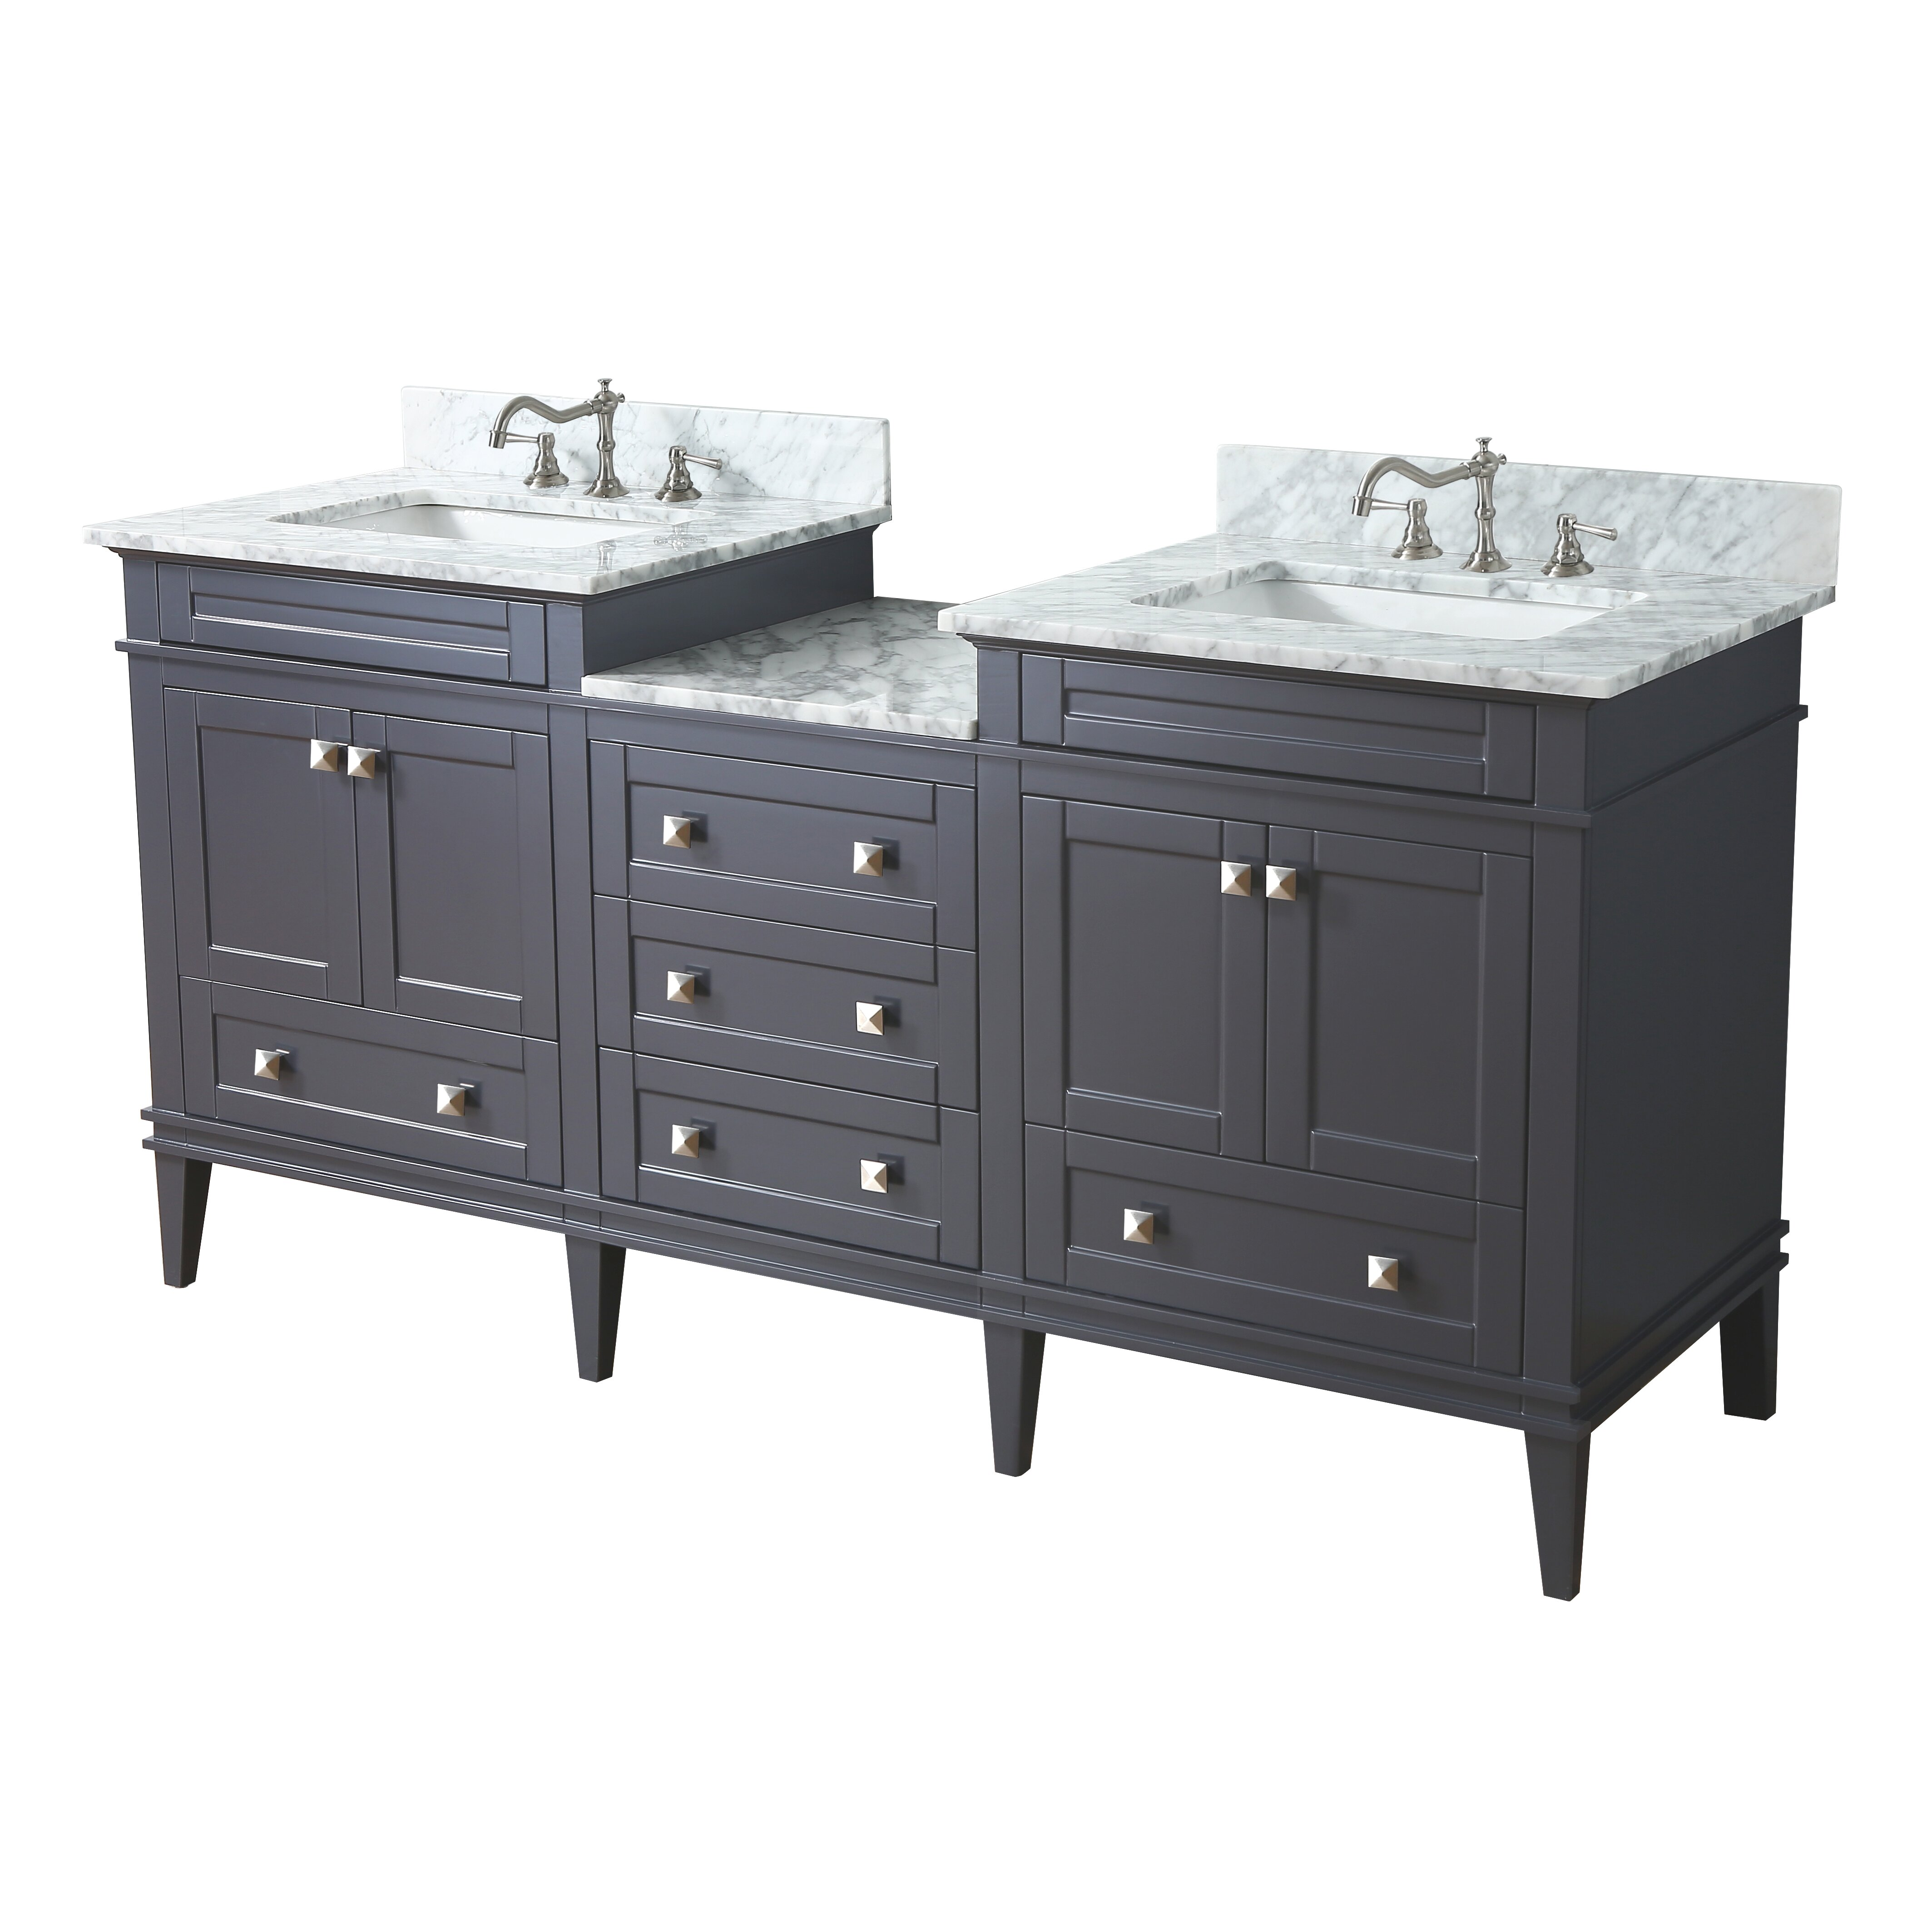 Kbc Eleanor 72 Double Bathroom Vanity Set Reviews Wayfair